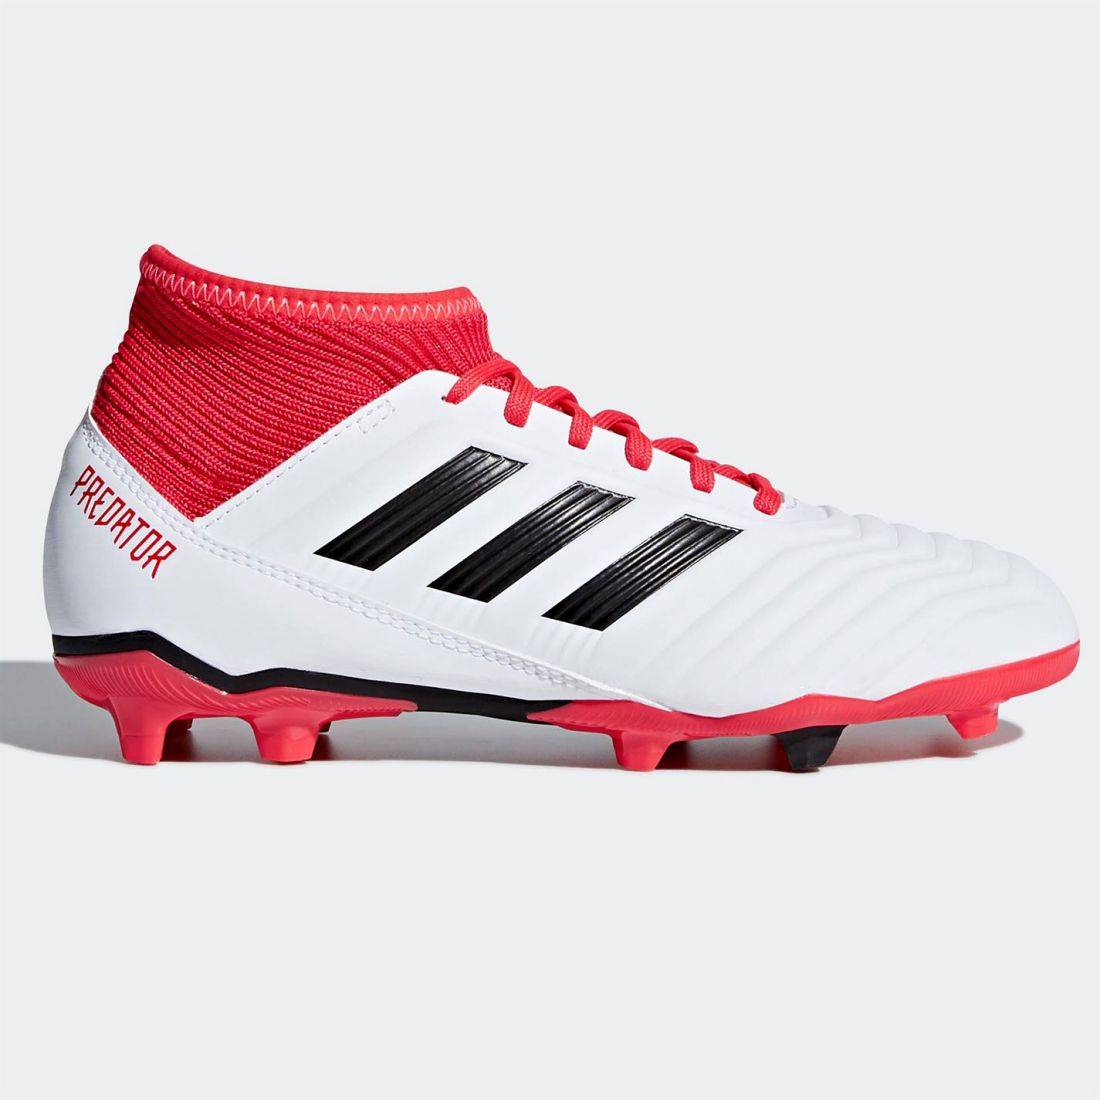 hot sale online c205a 142cd adidas-Predator-18-3-Youngster-FG-Football-Boots-